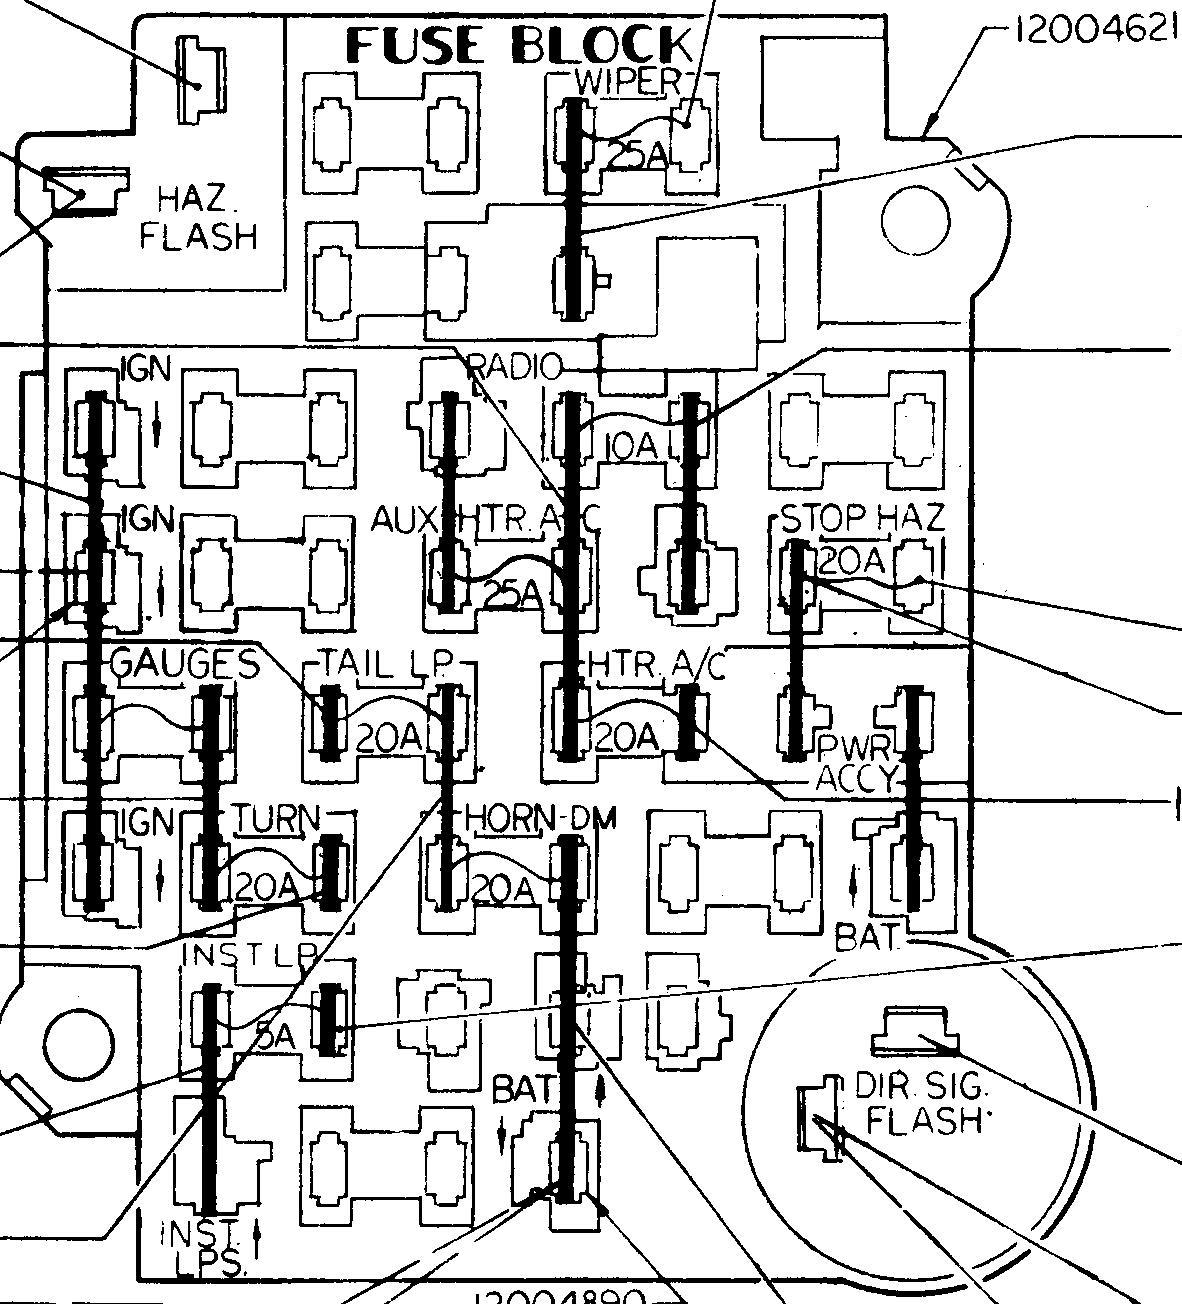 hight resolution of gm fuse box box wiring diagramgm fuse box wiring diagram z4 ferrari fuse box gm fuse